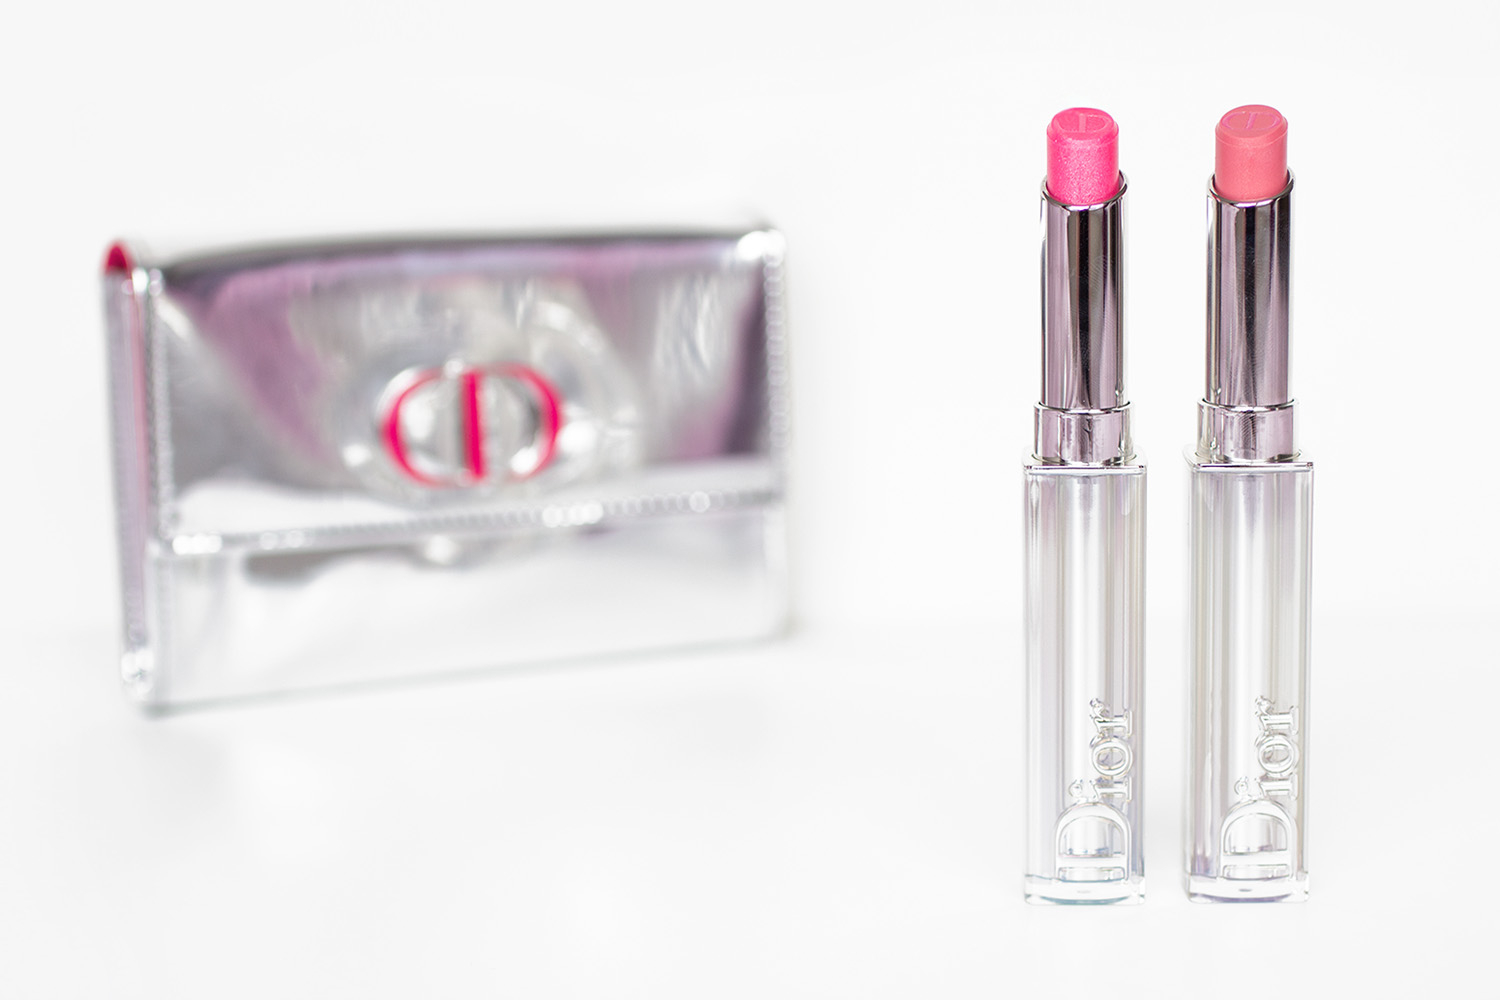 Dior Addict Lipstick : Smile & Wonderful